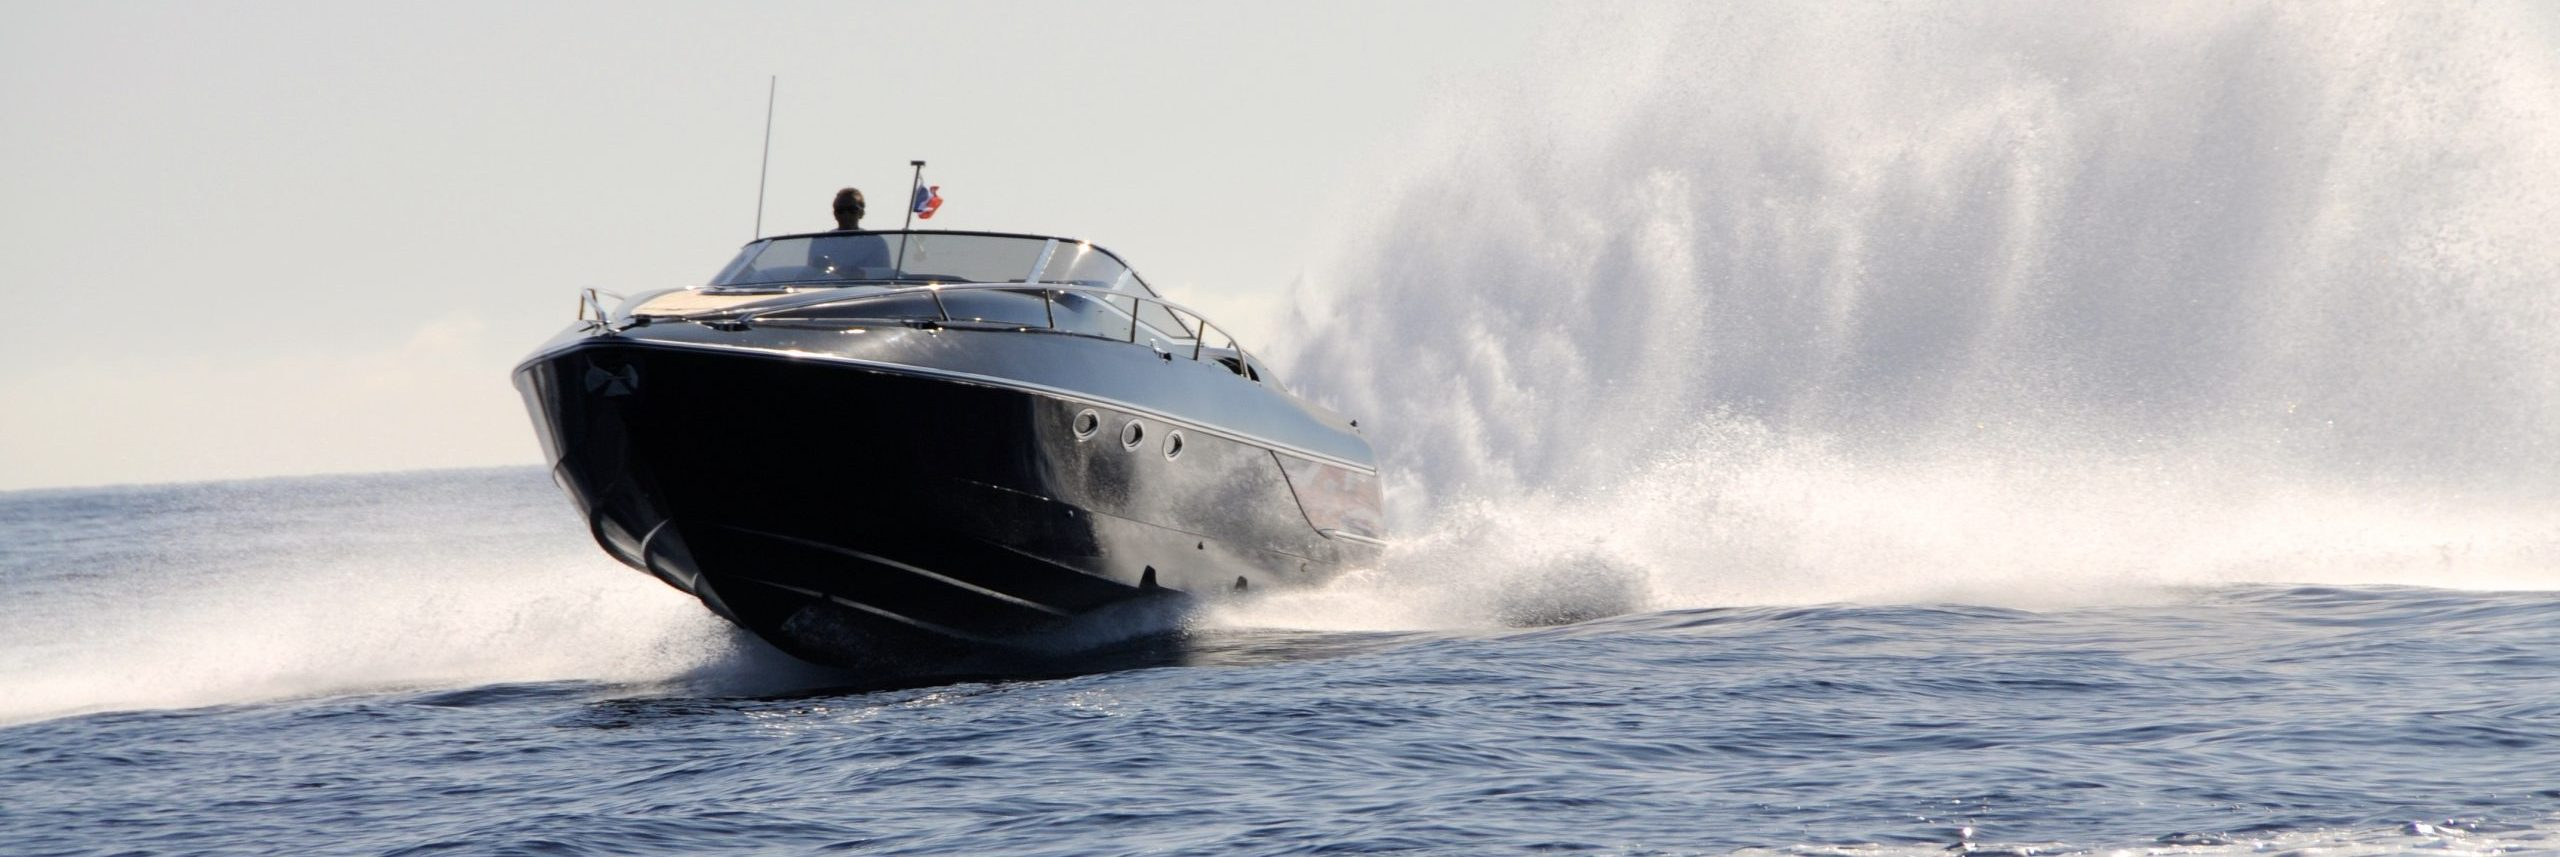 Hunton Powerboat running in open water